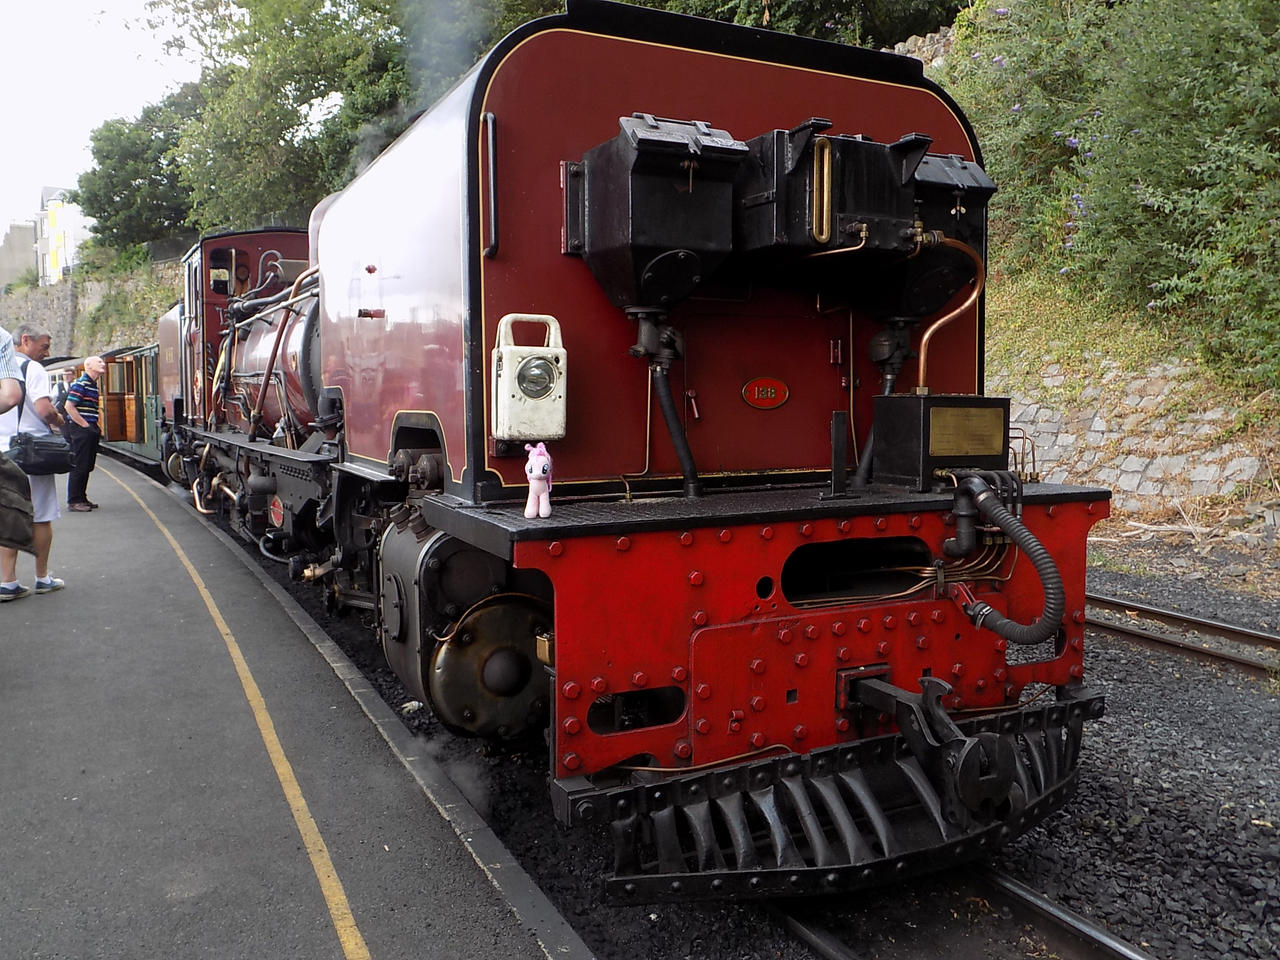 Pinkie's Travels: The Welsh Highland Railway